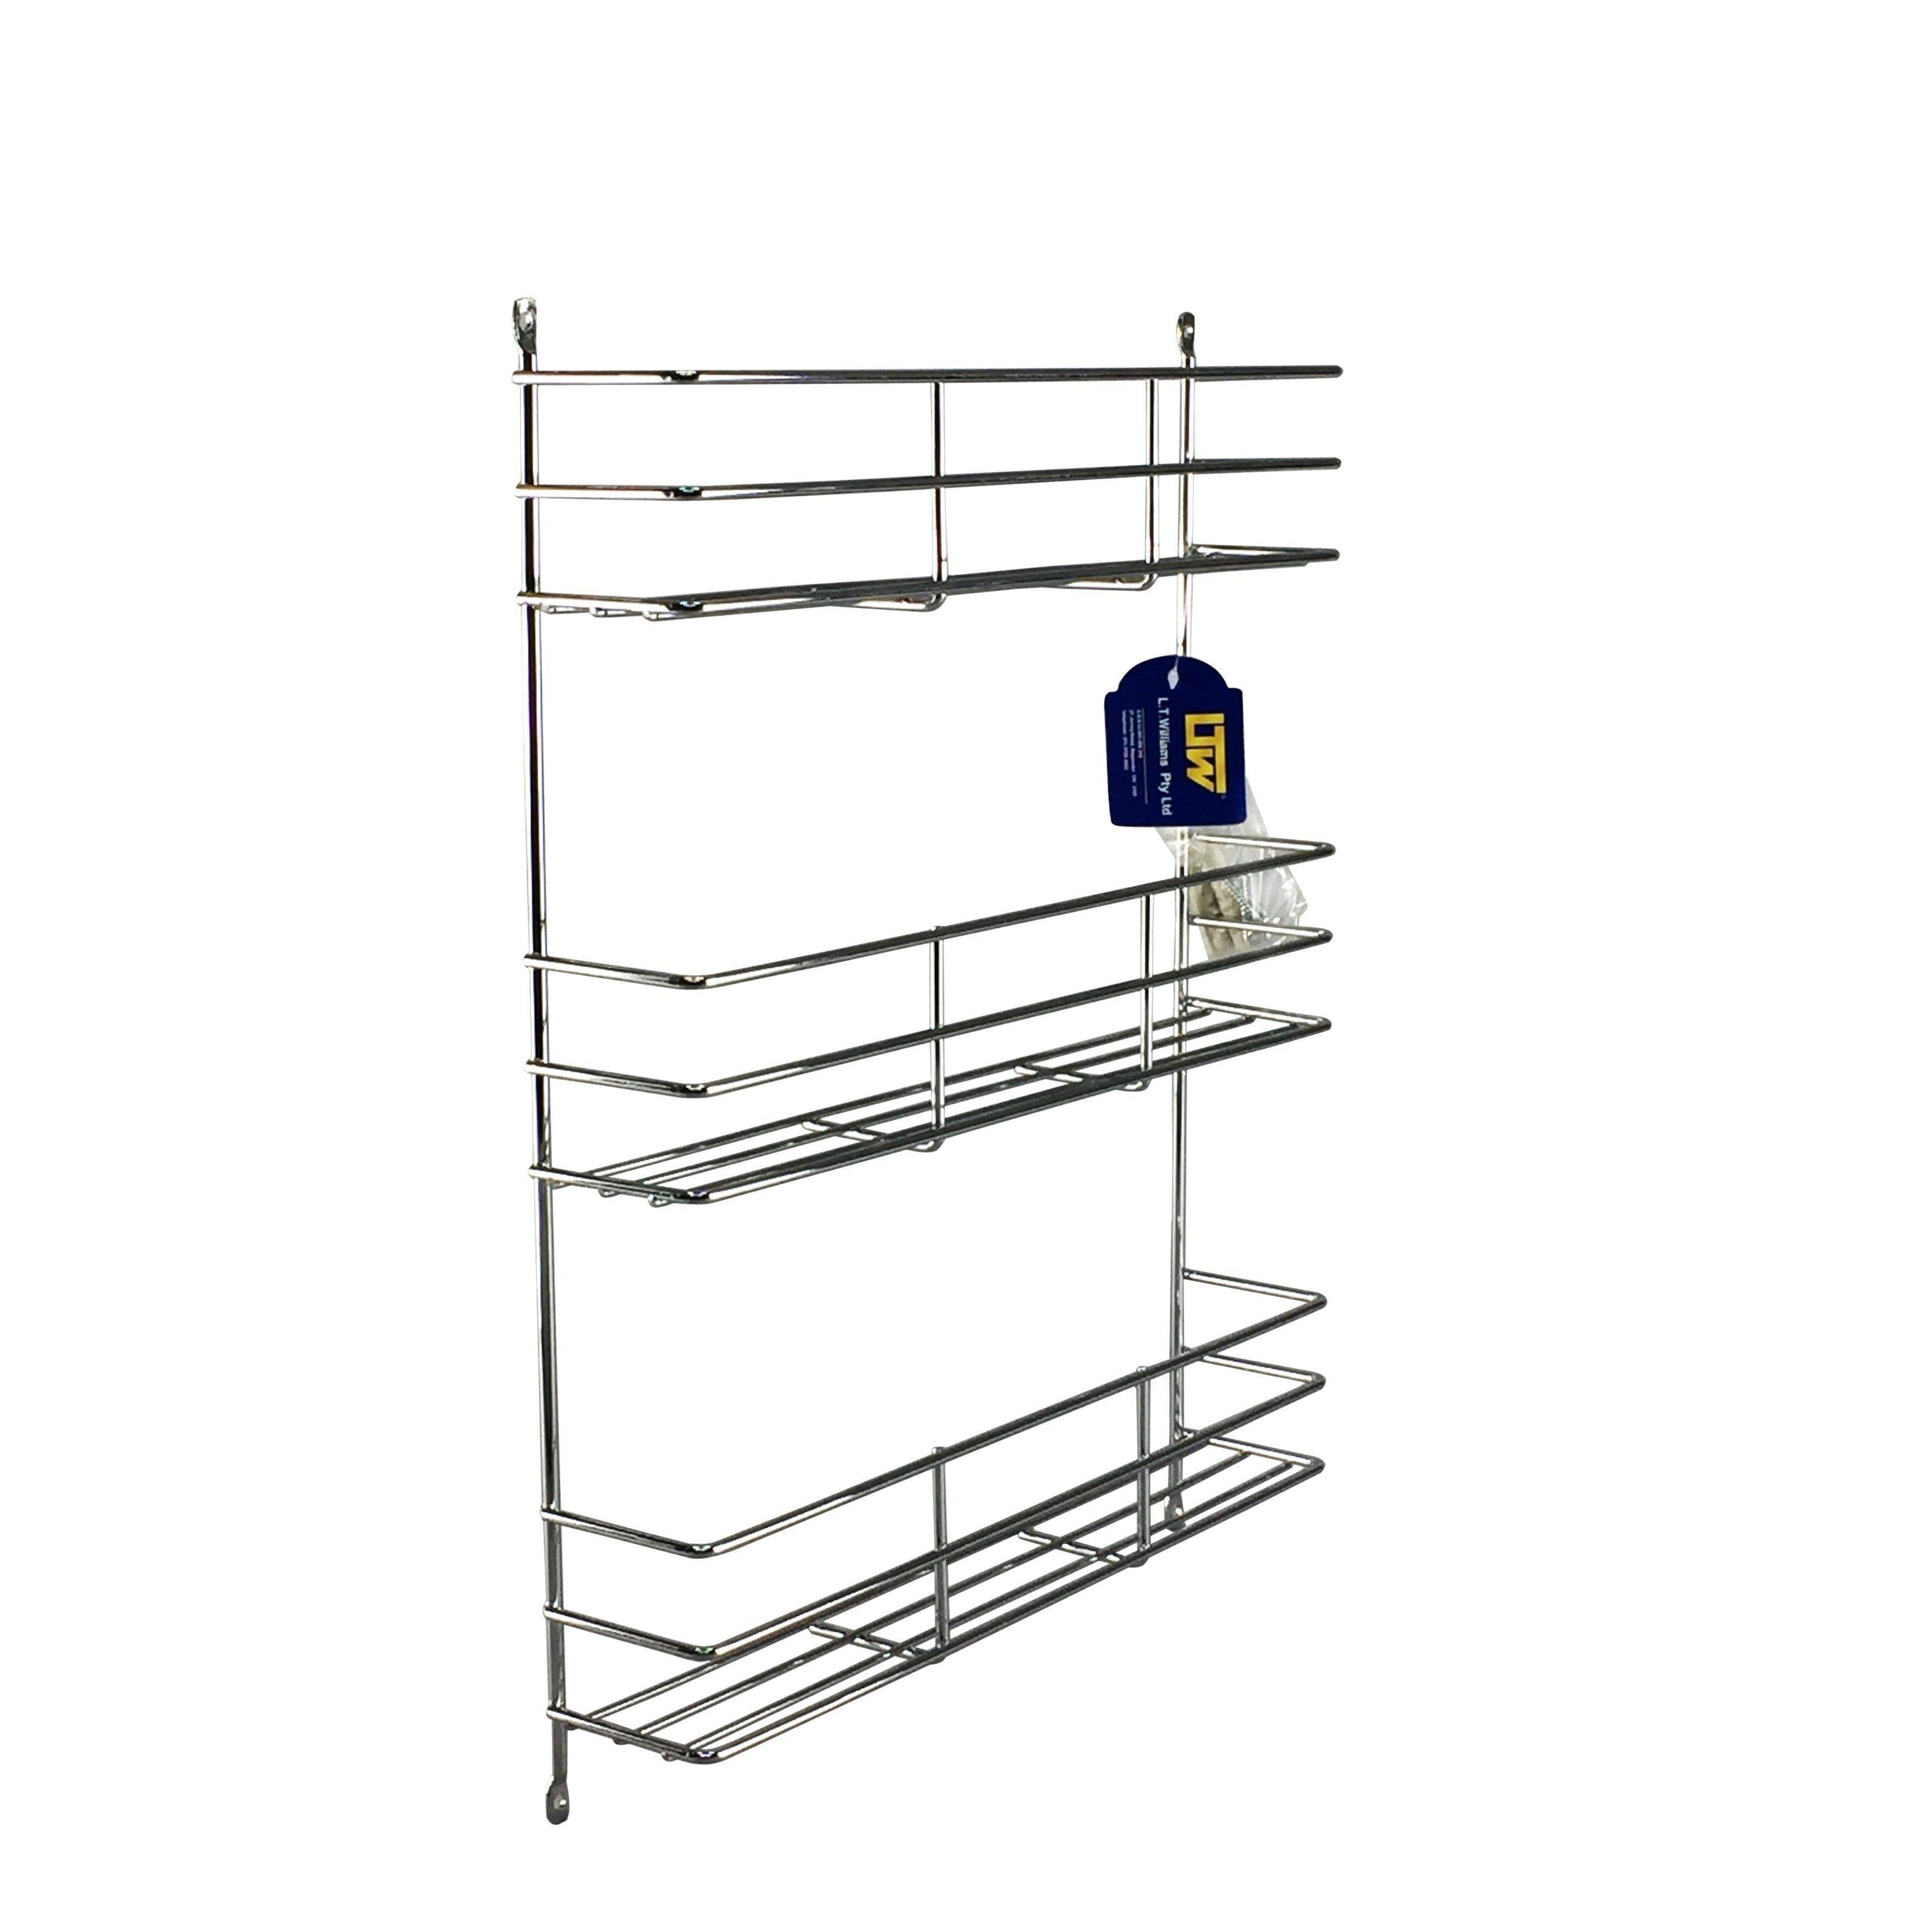 Image of: 3 Tier Spice Rack Chrome Storage Solutions Soko Co